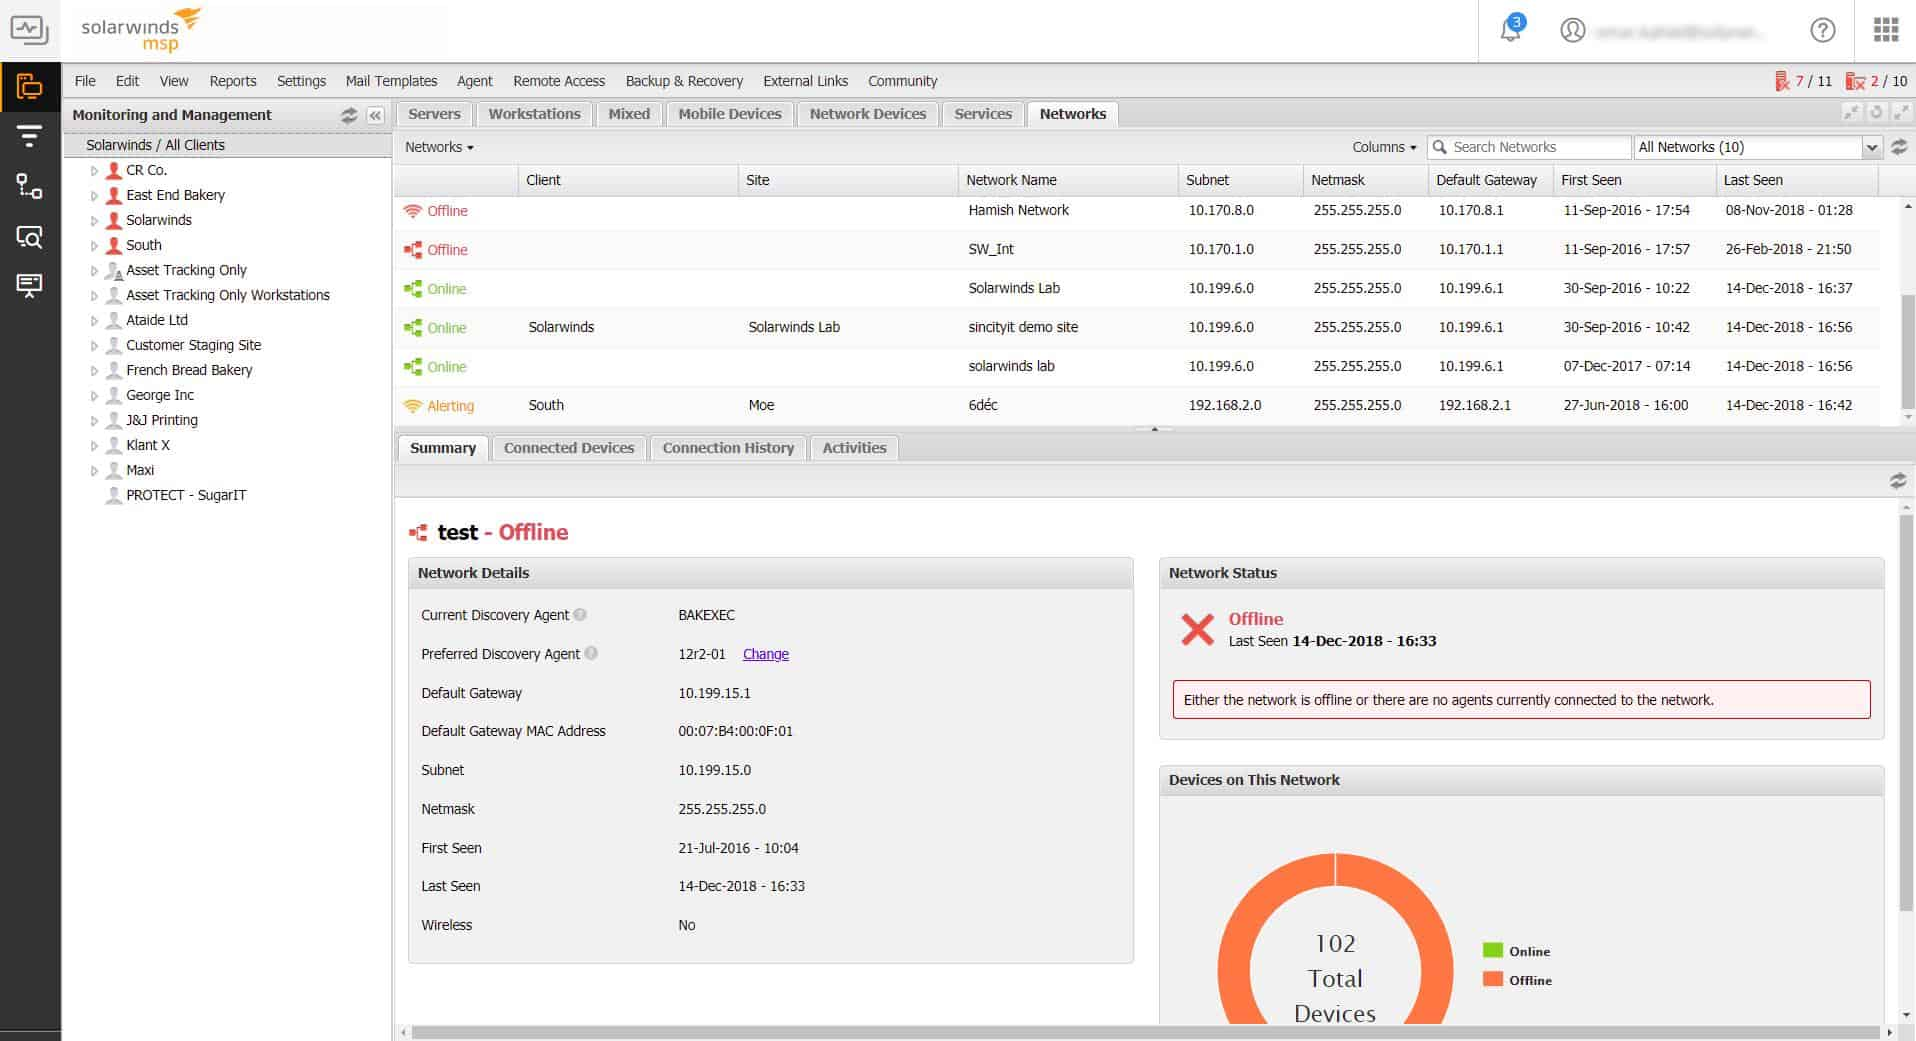 SolarWinds RMM Monitoring and Management Dashboard